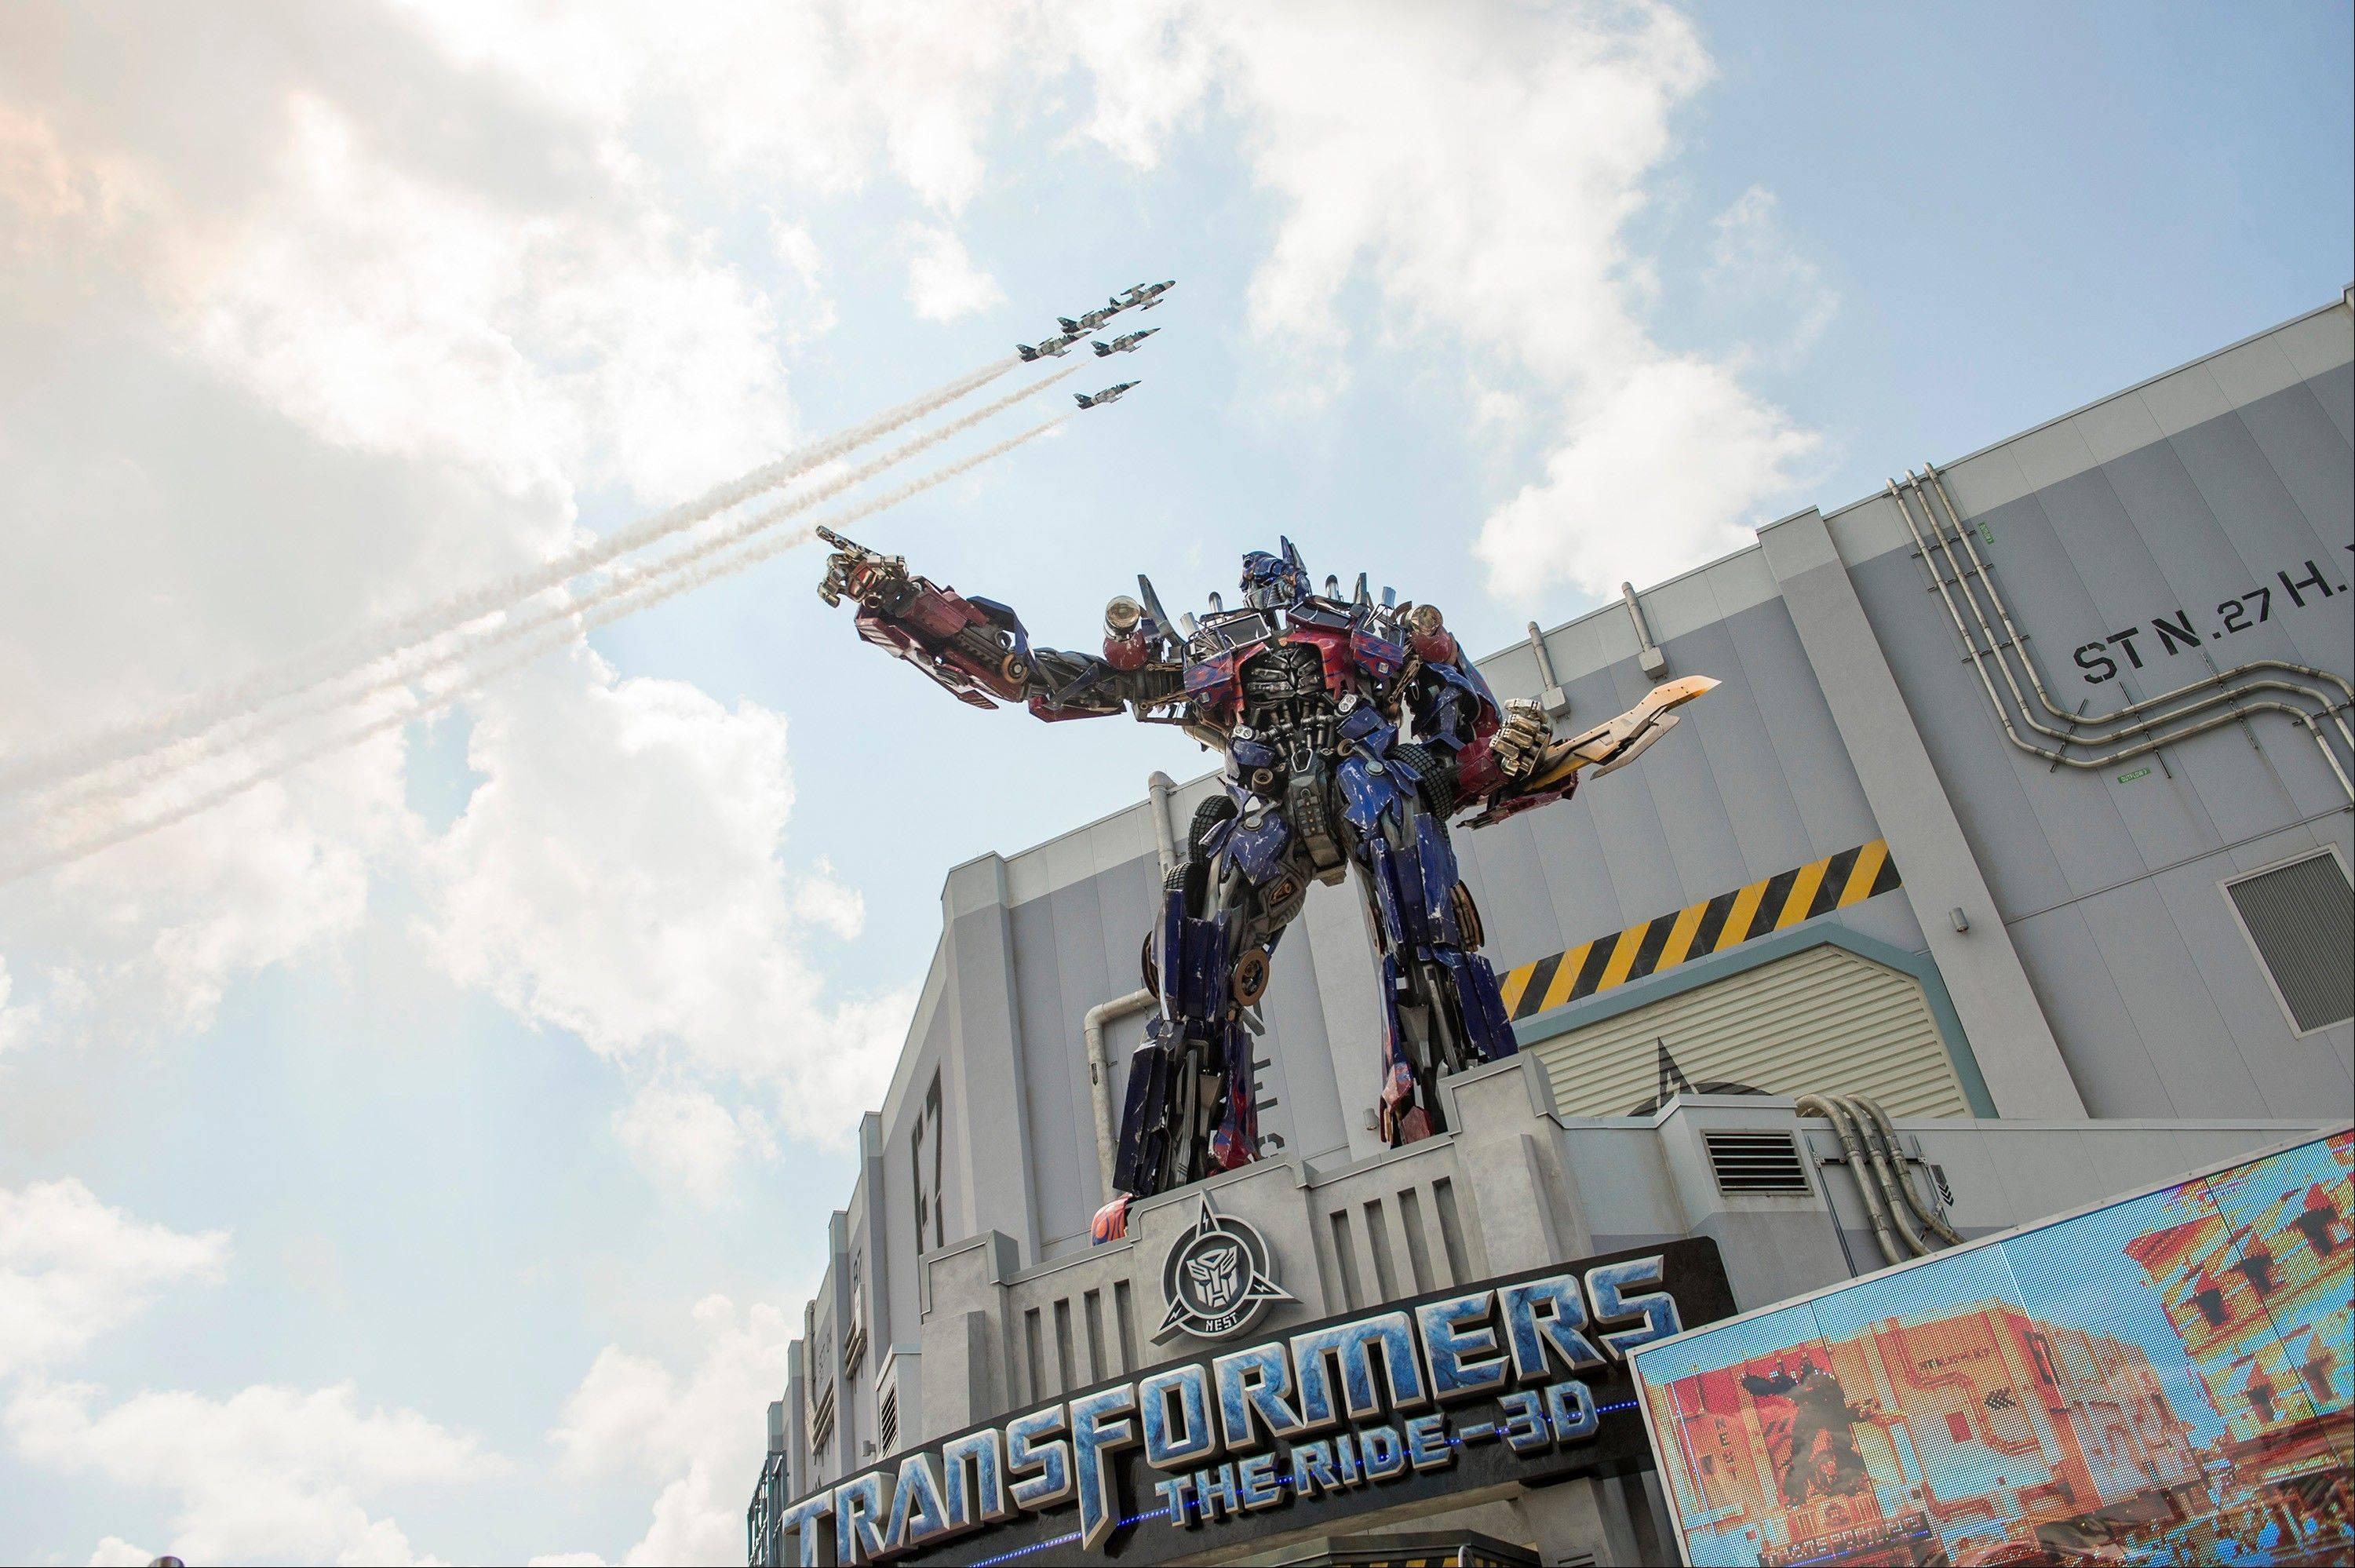 A three-story-tall Optimus Prime figure stands at the entrance to the Transformers: The Ride-3D as a formation of private jets flies overhead at the grand opening of the attraction at Universal Orlando Resort in Orlando, Fla.